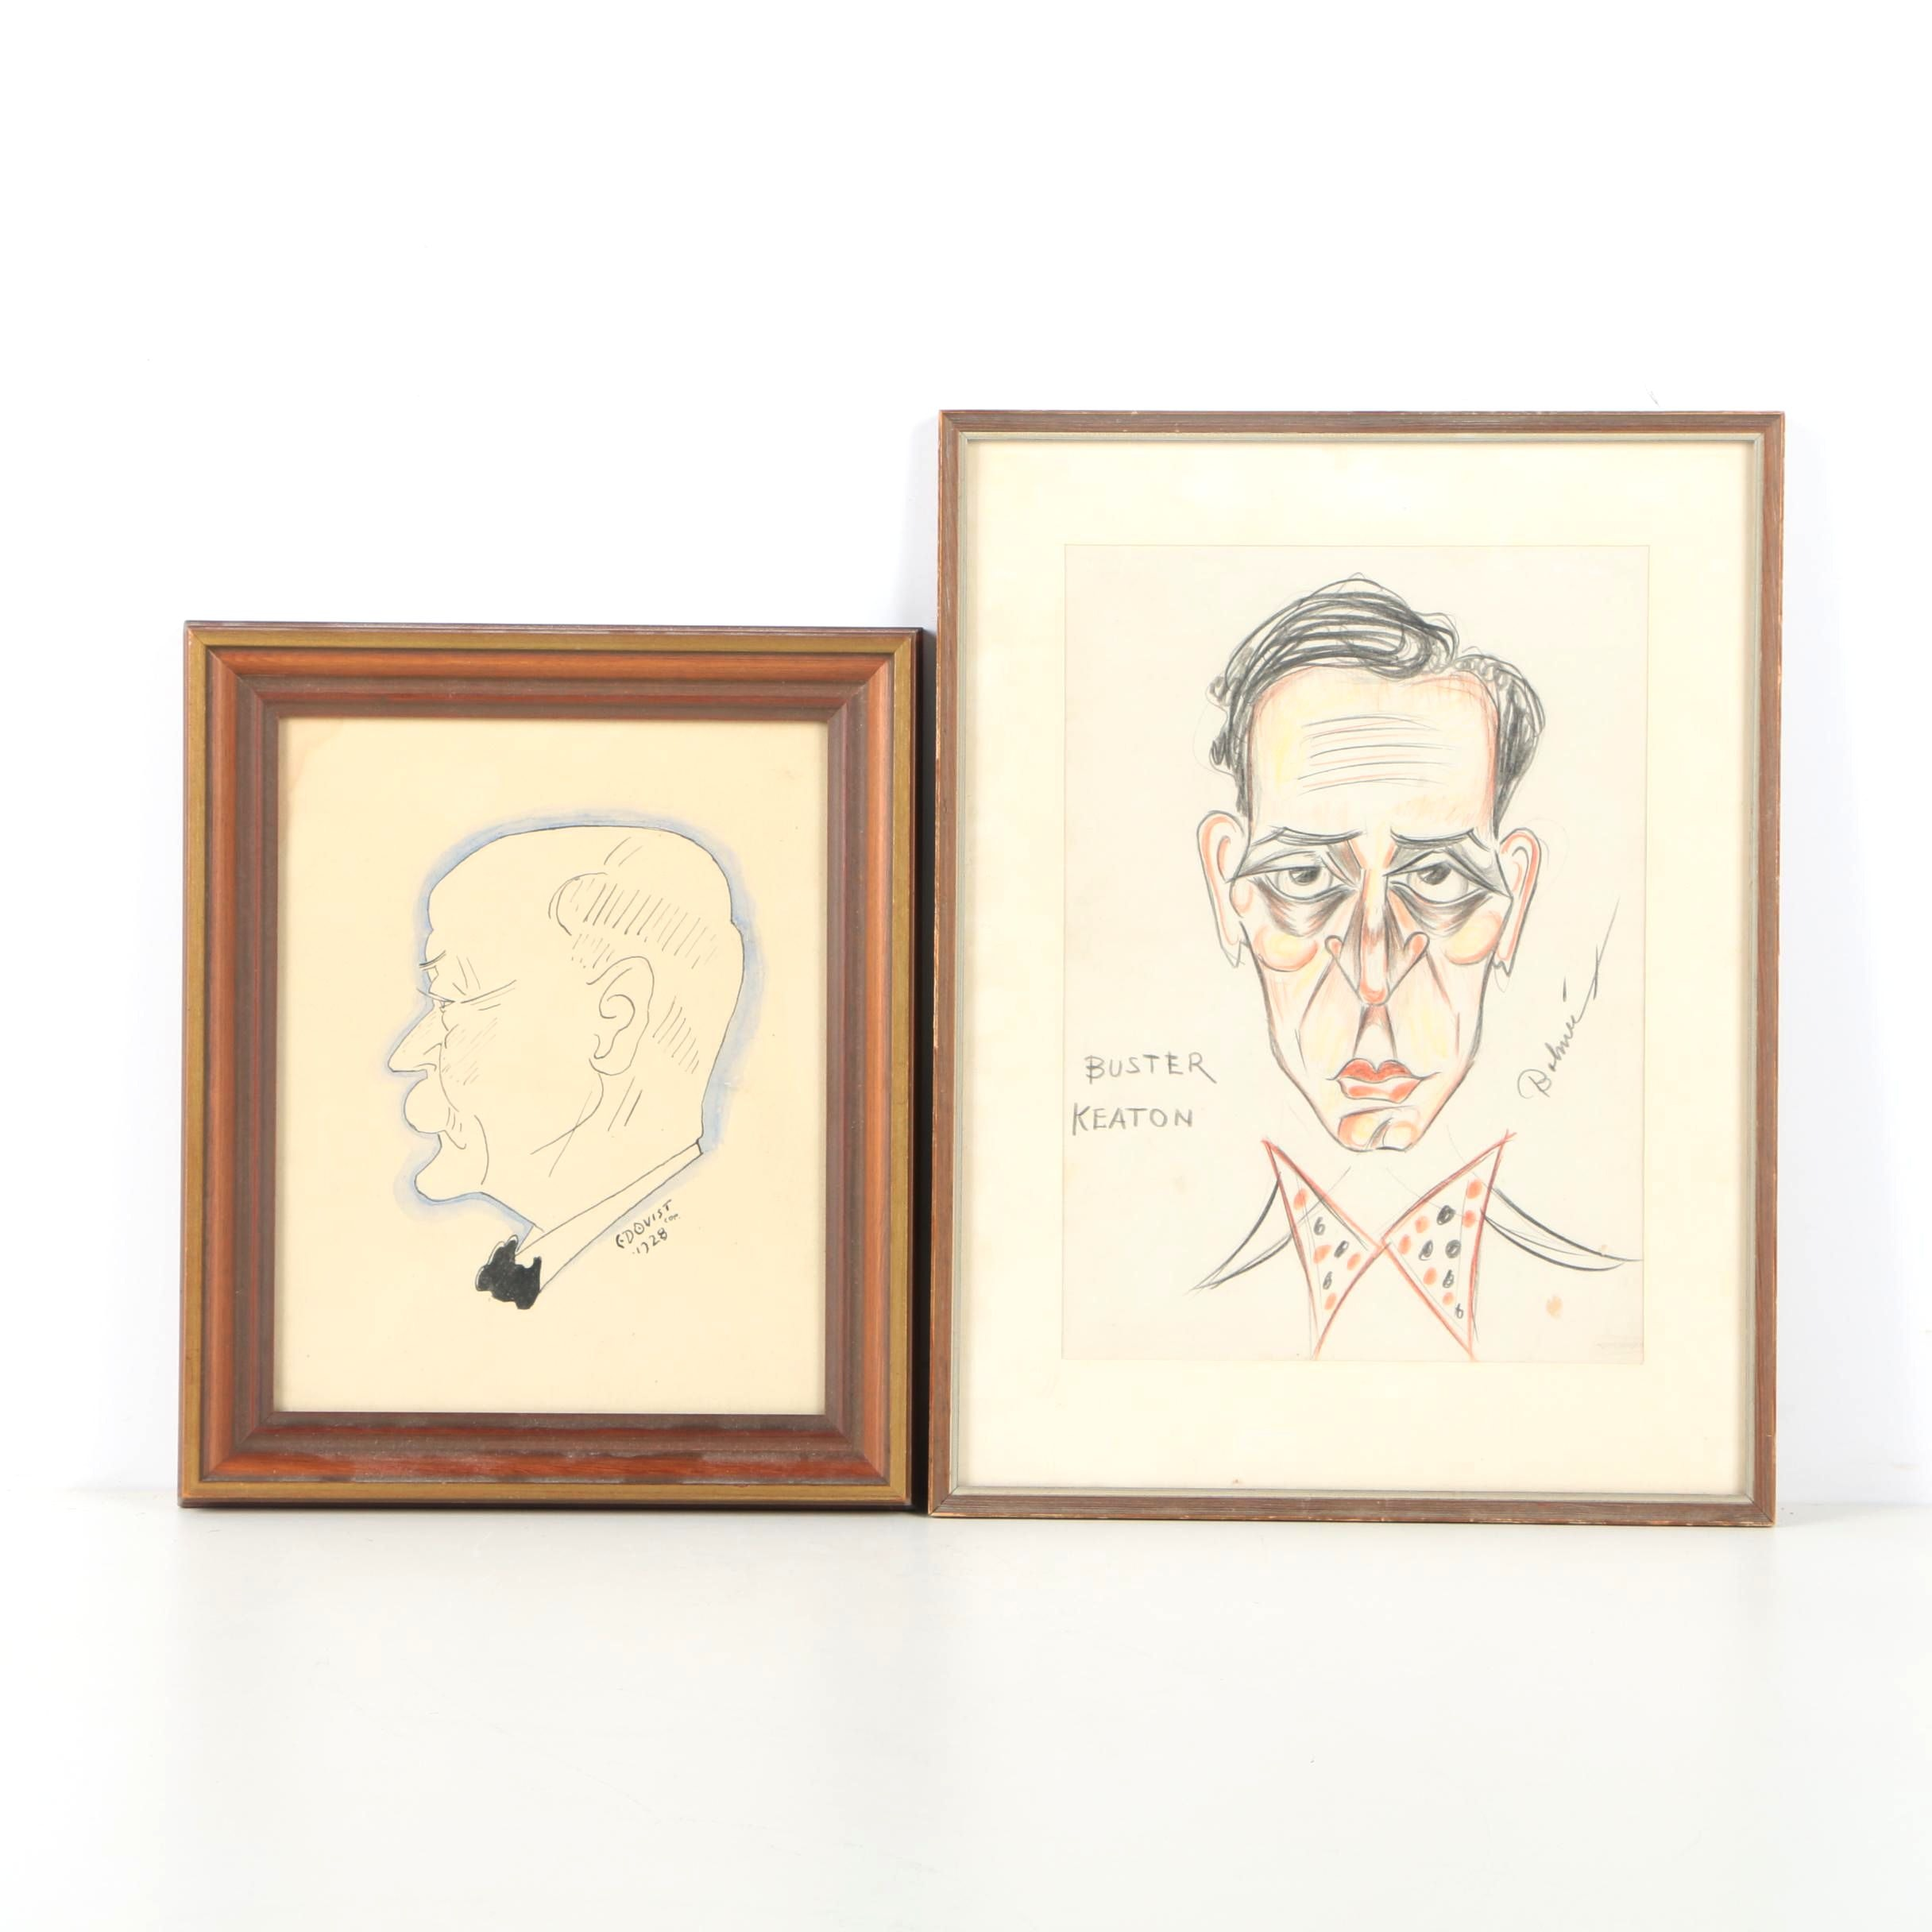 Caricatures Featuring Drawing of Buster Keaton